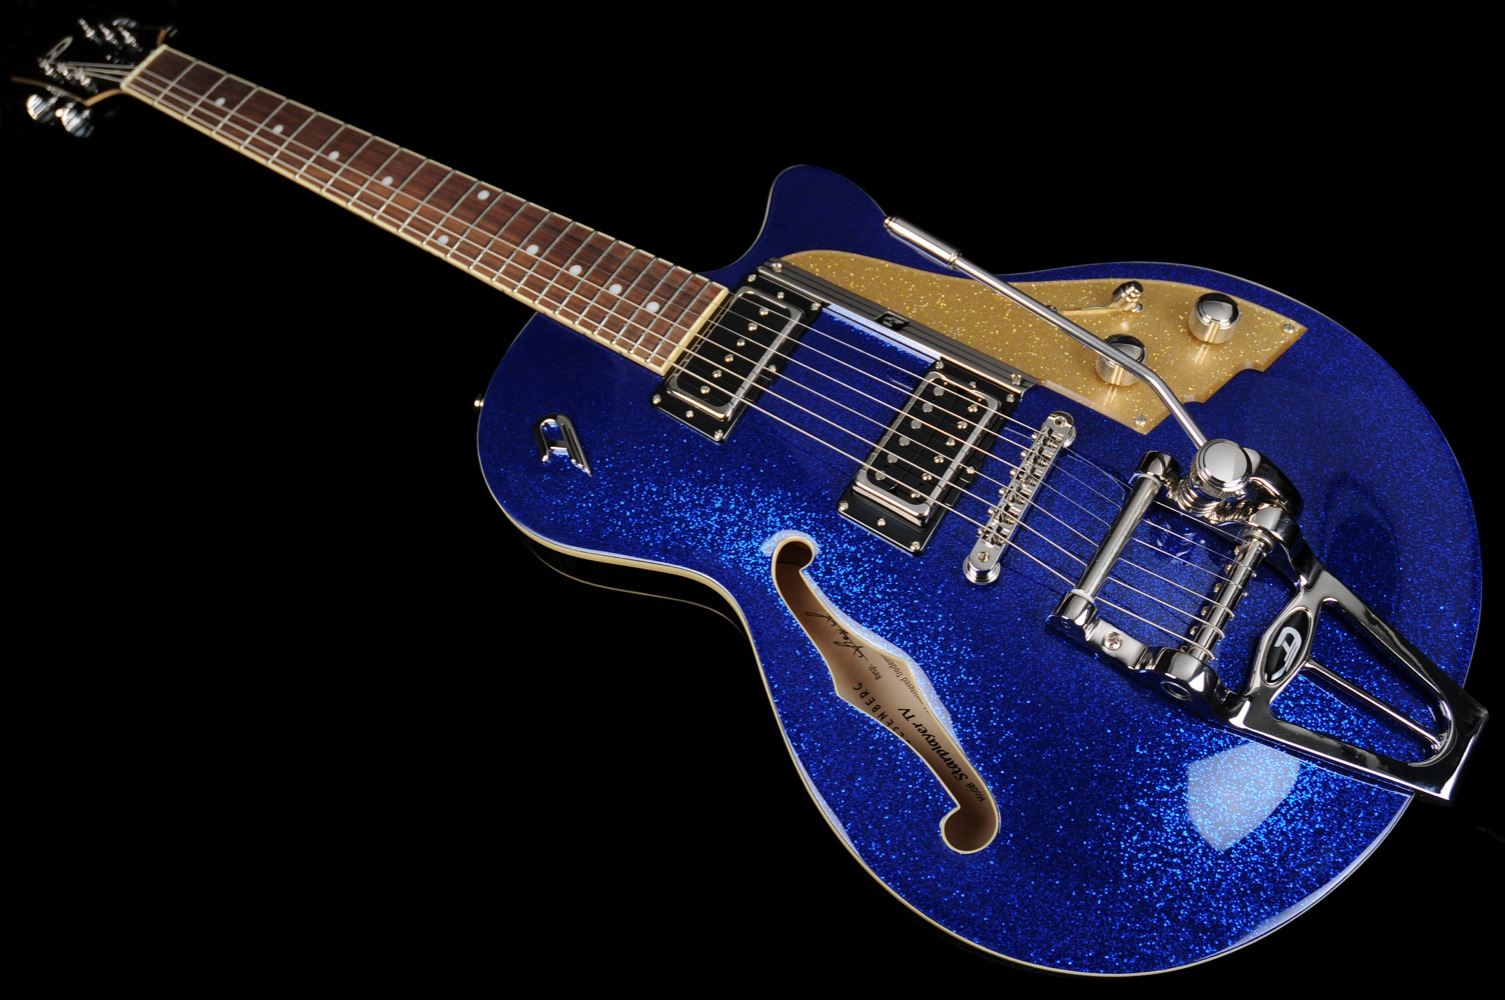 duesenberg starplayer tv blue sparkle with case 2014 guitar for sale wildwire music and audio. Black Bedroom Furniture Sets. Home Design Ideas